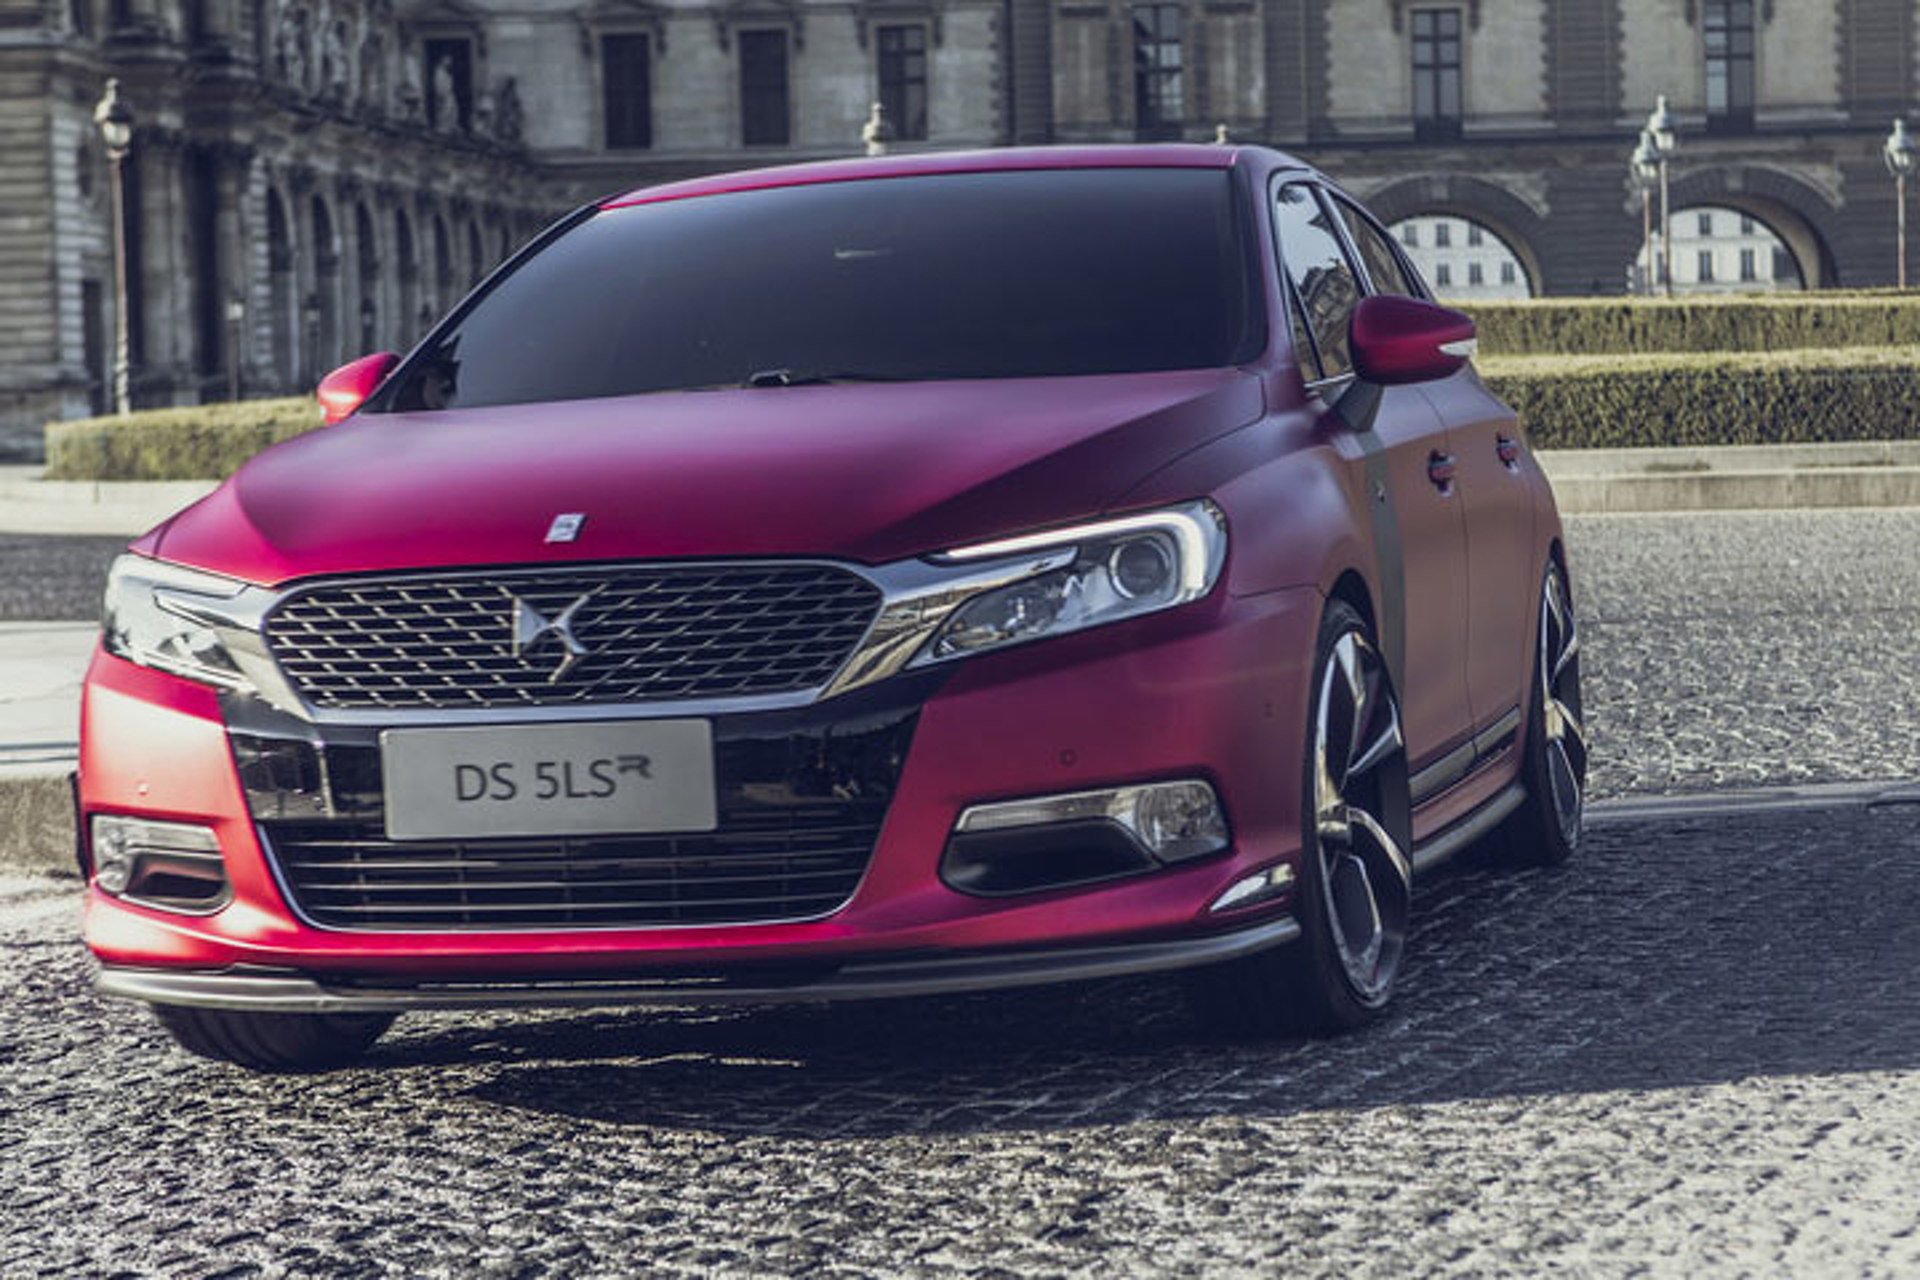 Citroen DS 5LS R Concept is a Chinese Heavy Hitter